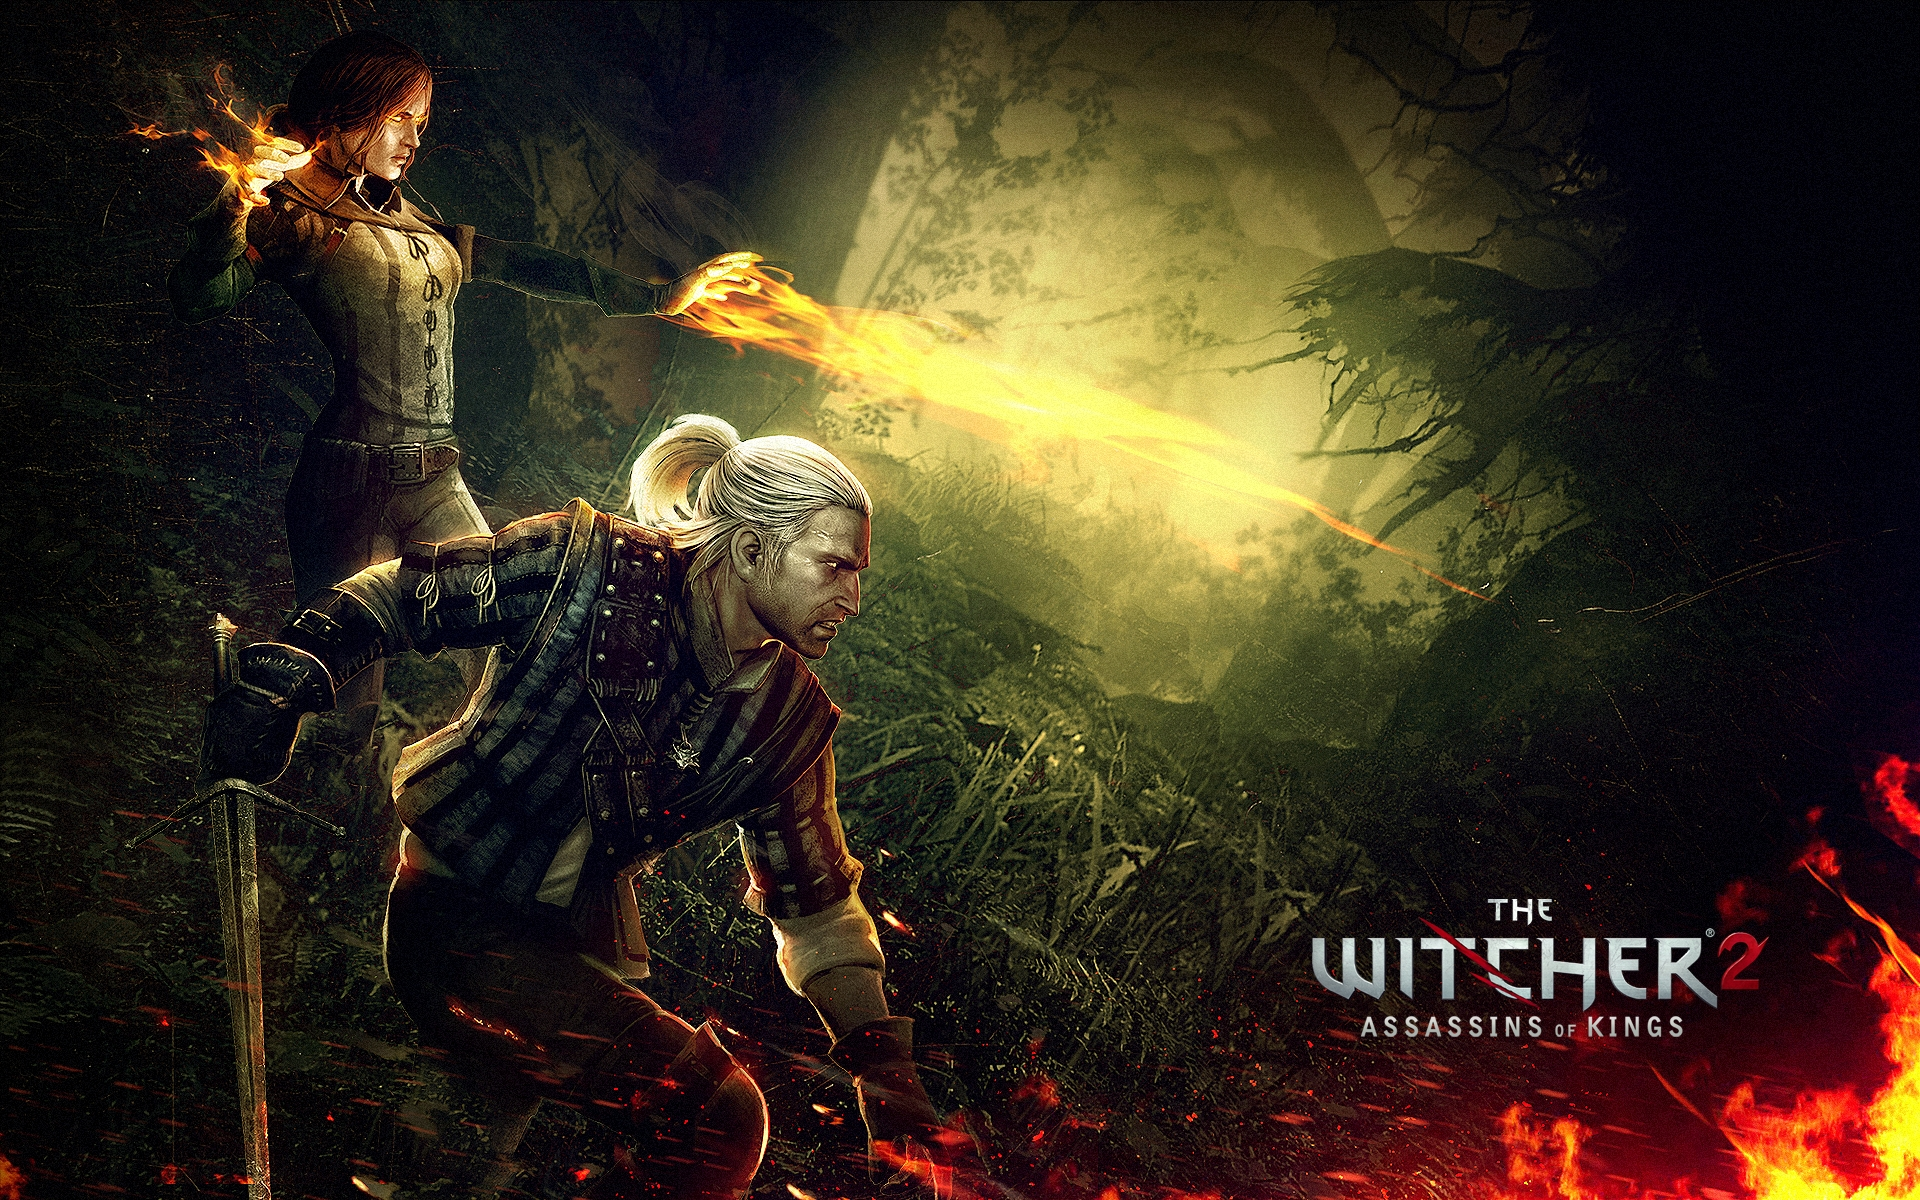 The Witcher 2 wallpaper 2